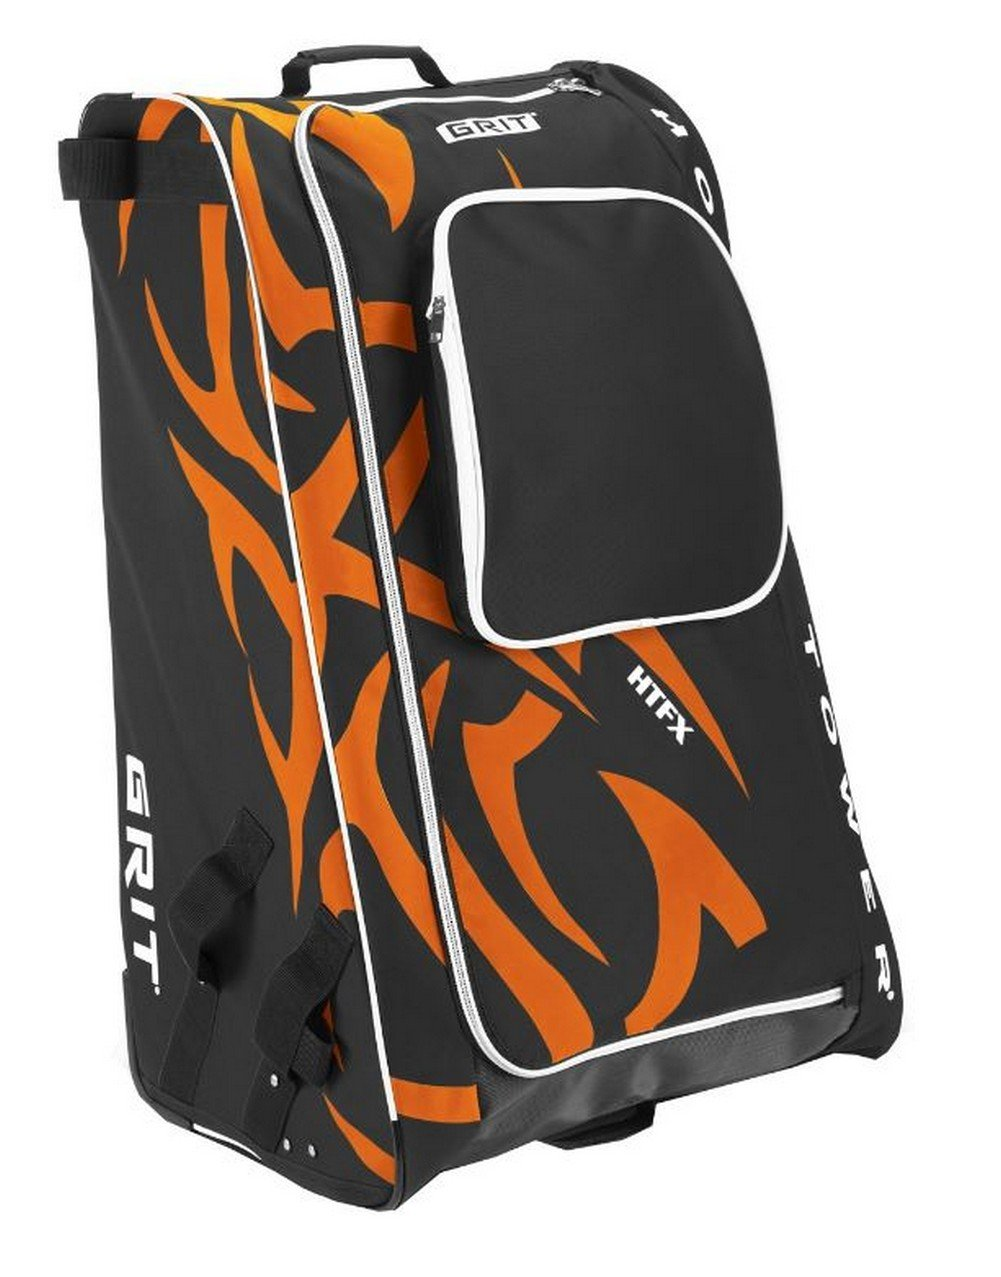 Grit Inc HTFX Hockey Tower 36'' Wheeled Equipment Bag Orange HTFX036-PH (Philly) by Grit